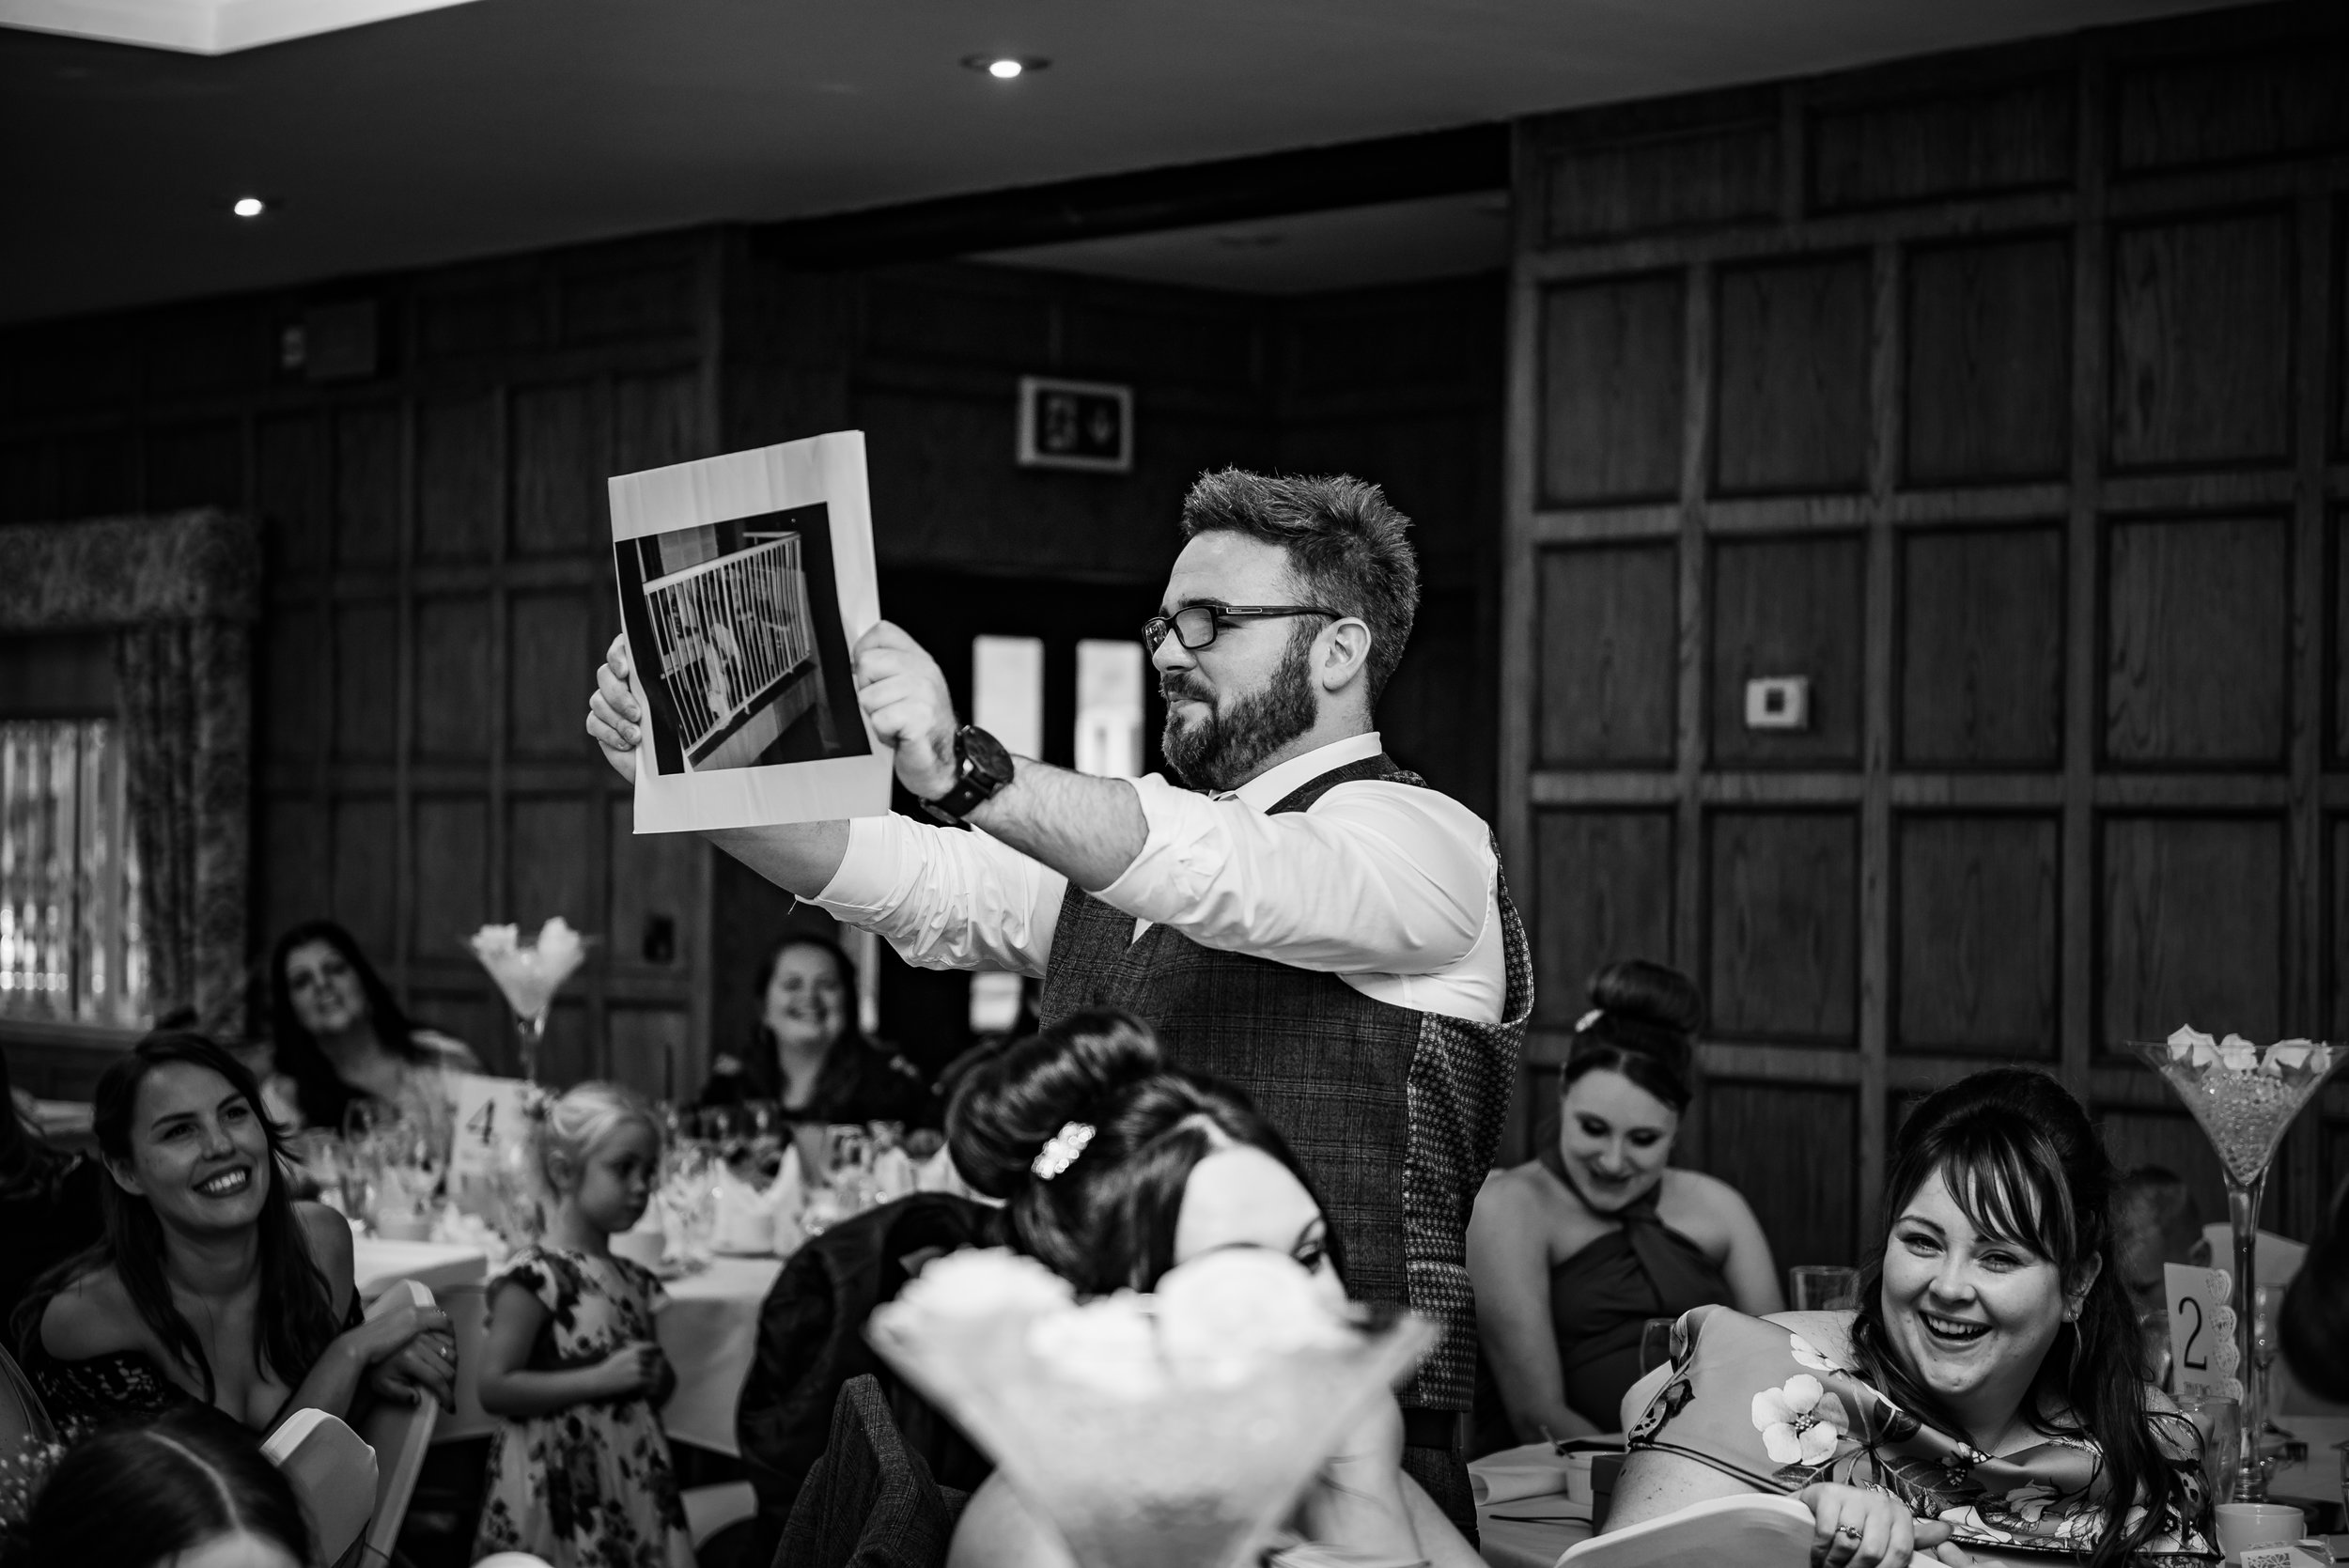 castle Bromwich hall hotel wedding photography natural black and white photography speeches best man with the worst hilarious photograph of the groom